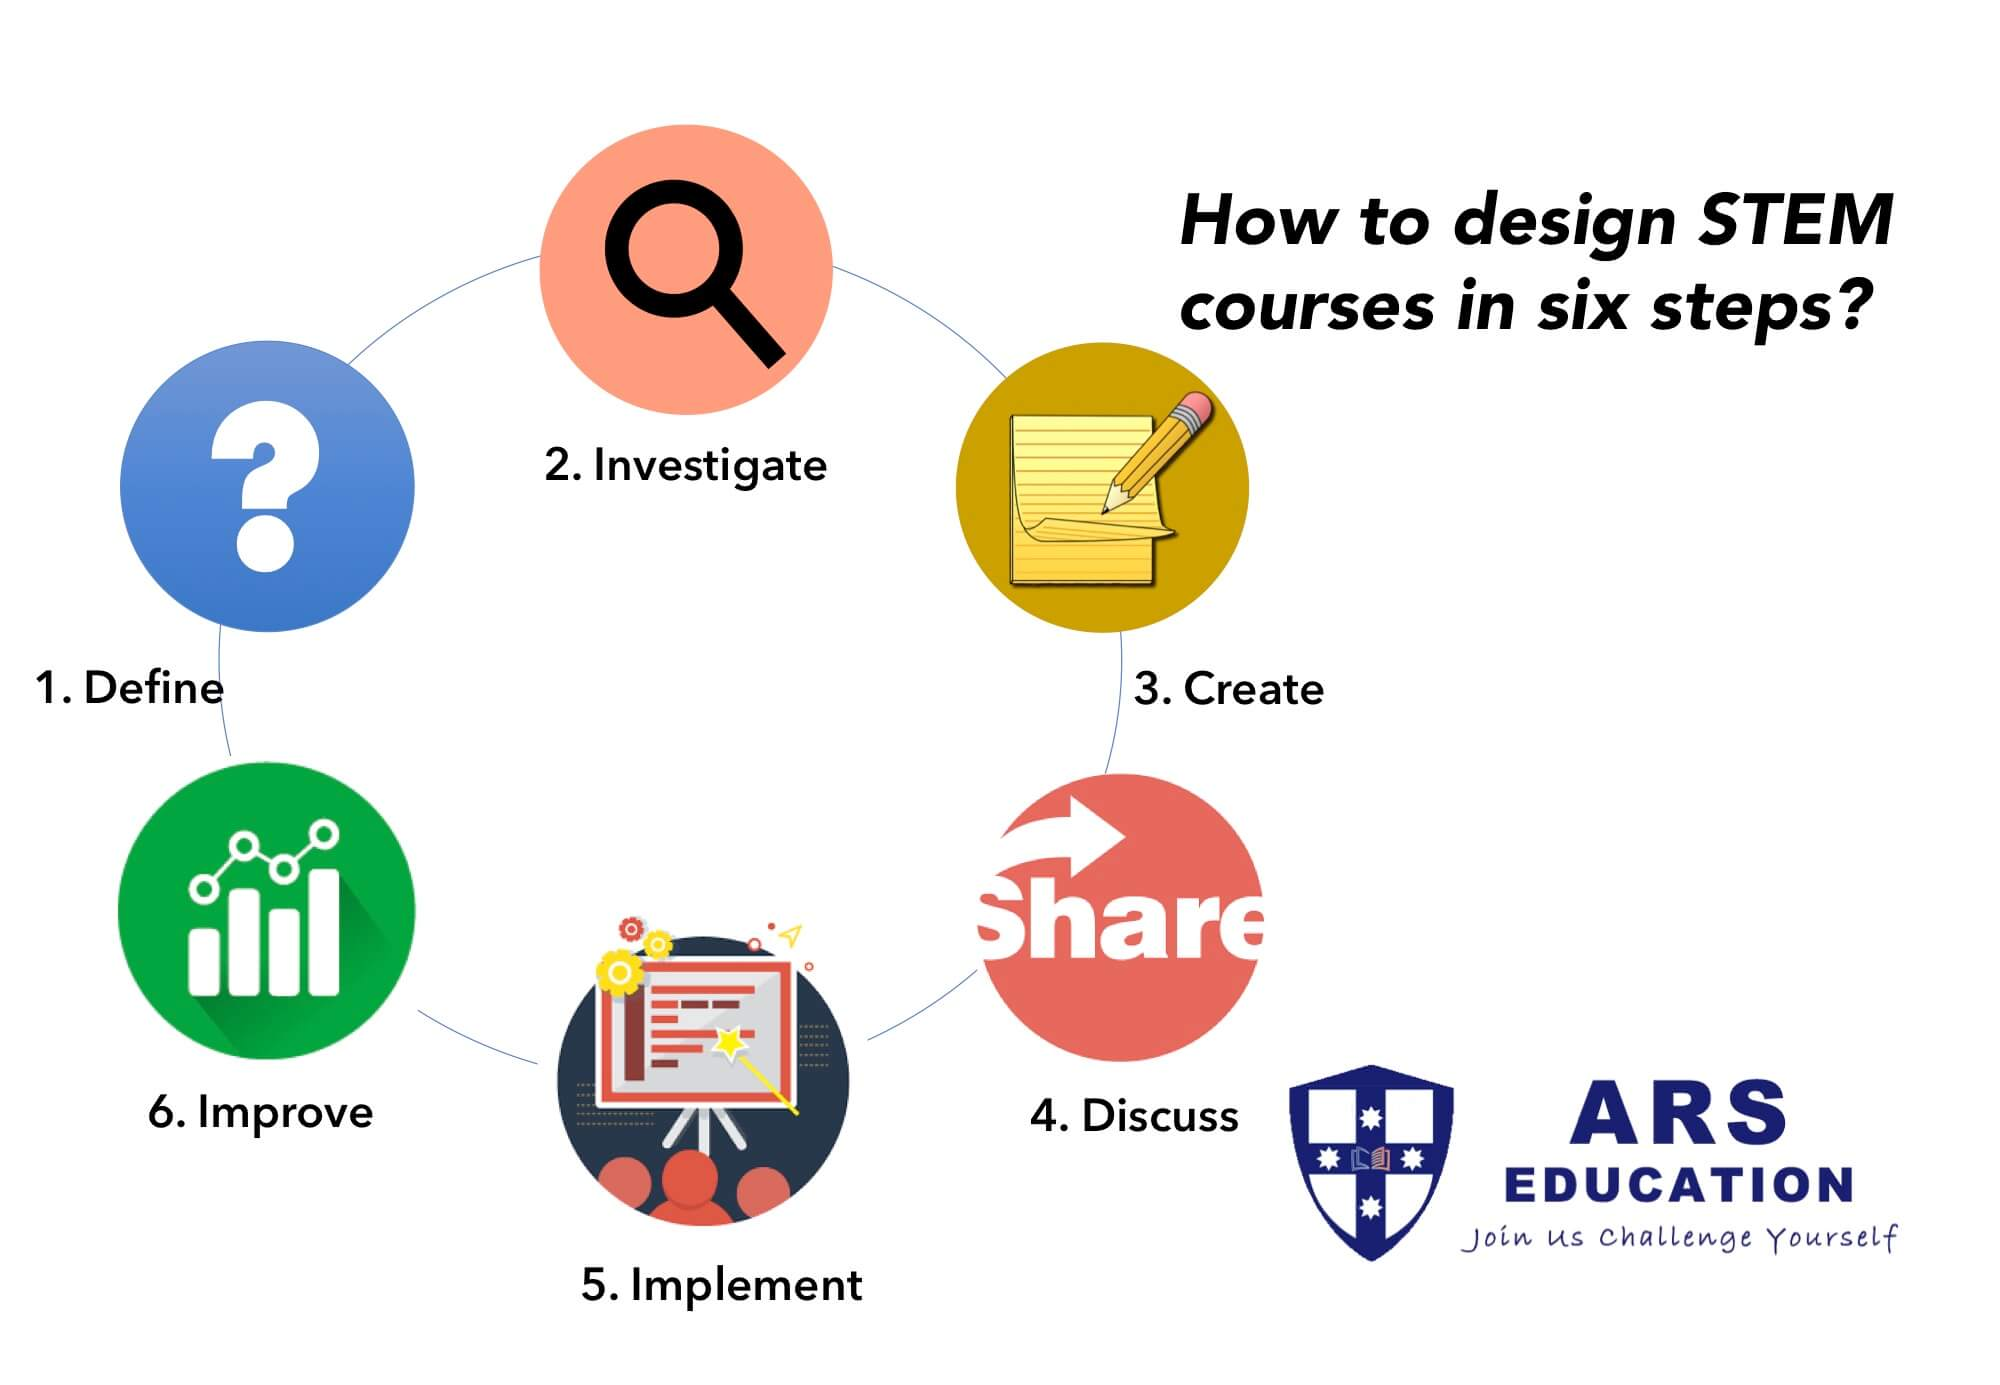 Whitepaper: How to Design STEM Courses in Six Steps